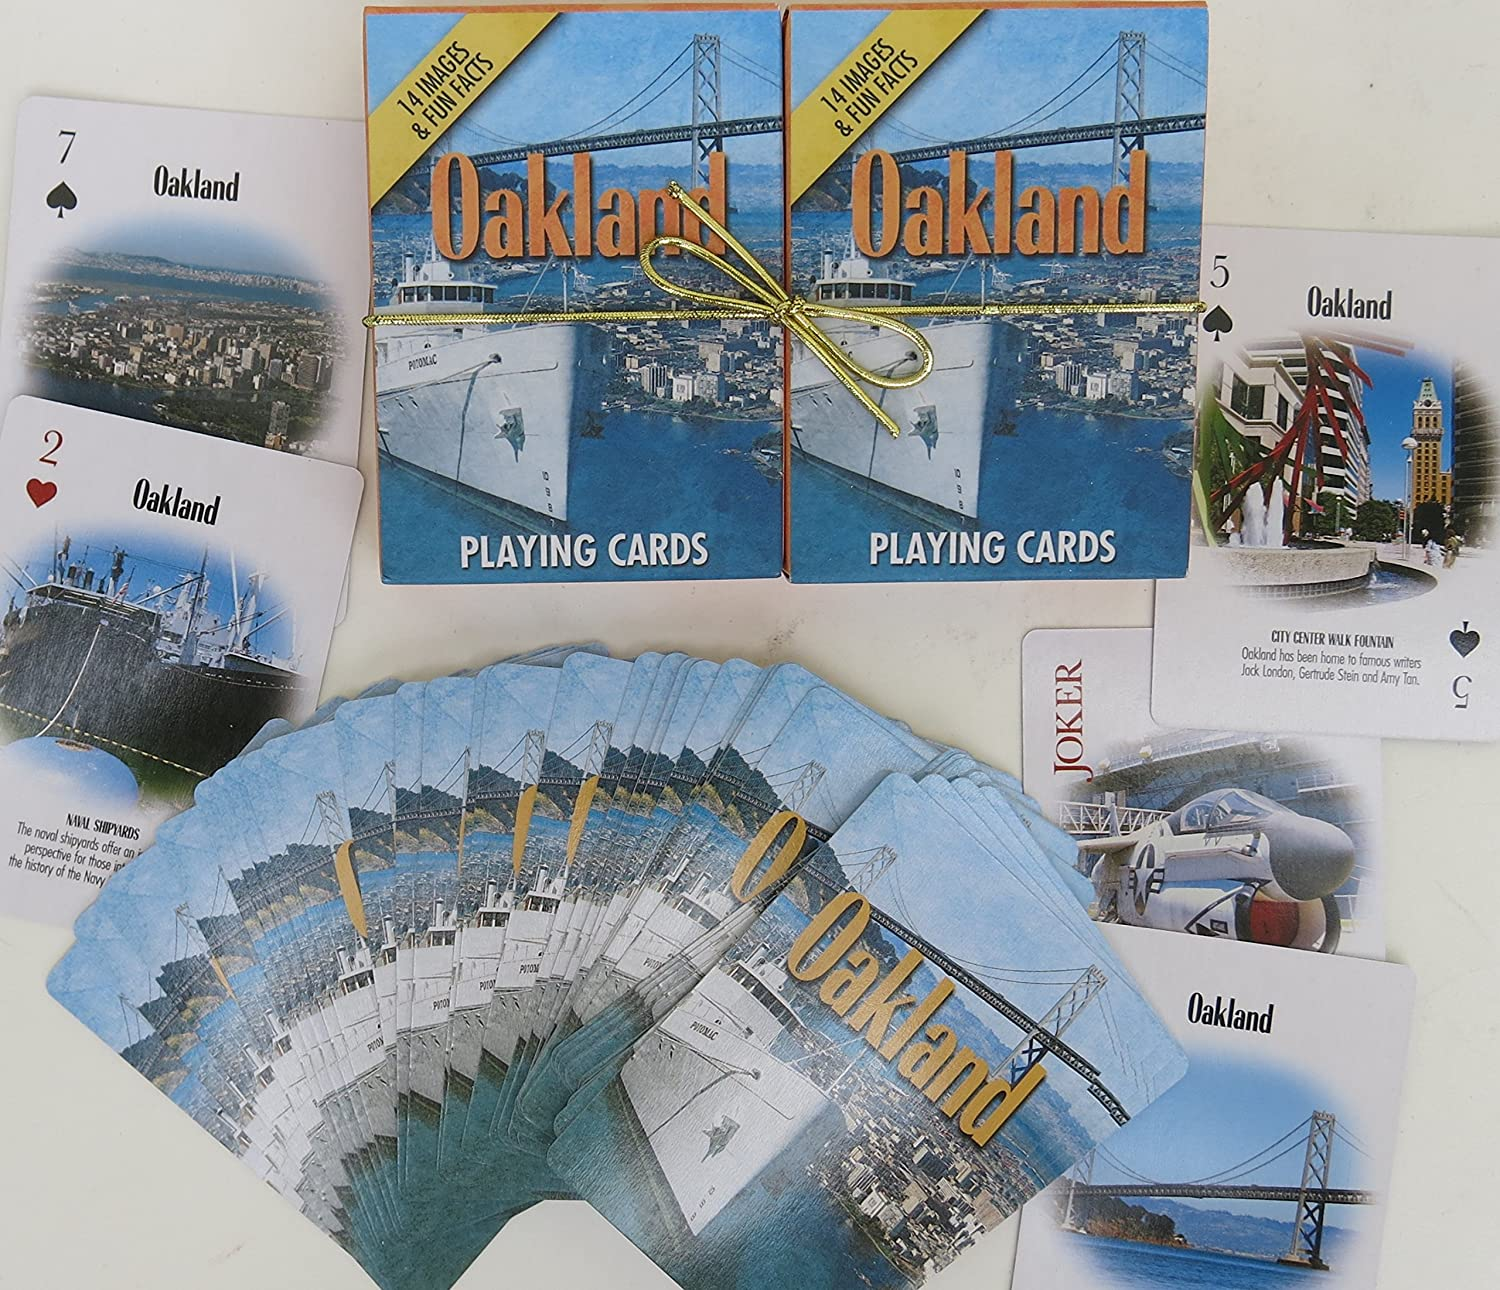 Oakland, Souvenir Playing Cards, Vacation Gift. Card Faces Feature Multiple Landmarks, Ousttanding Tourist Gift. The Two Deck Set Includes a gold Gift Ribbon